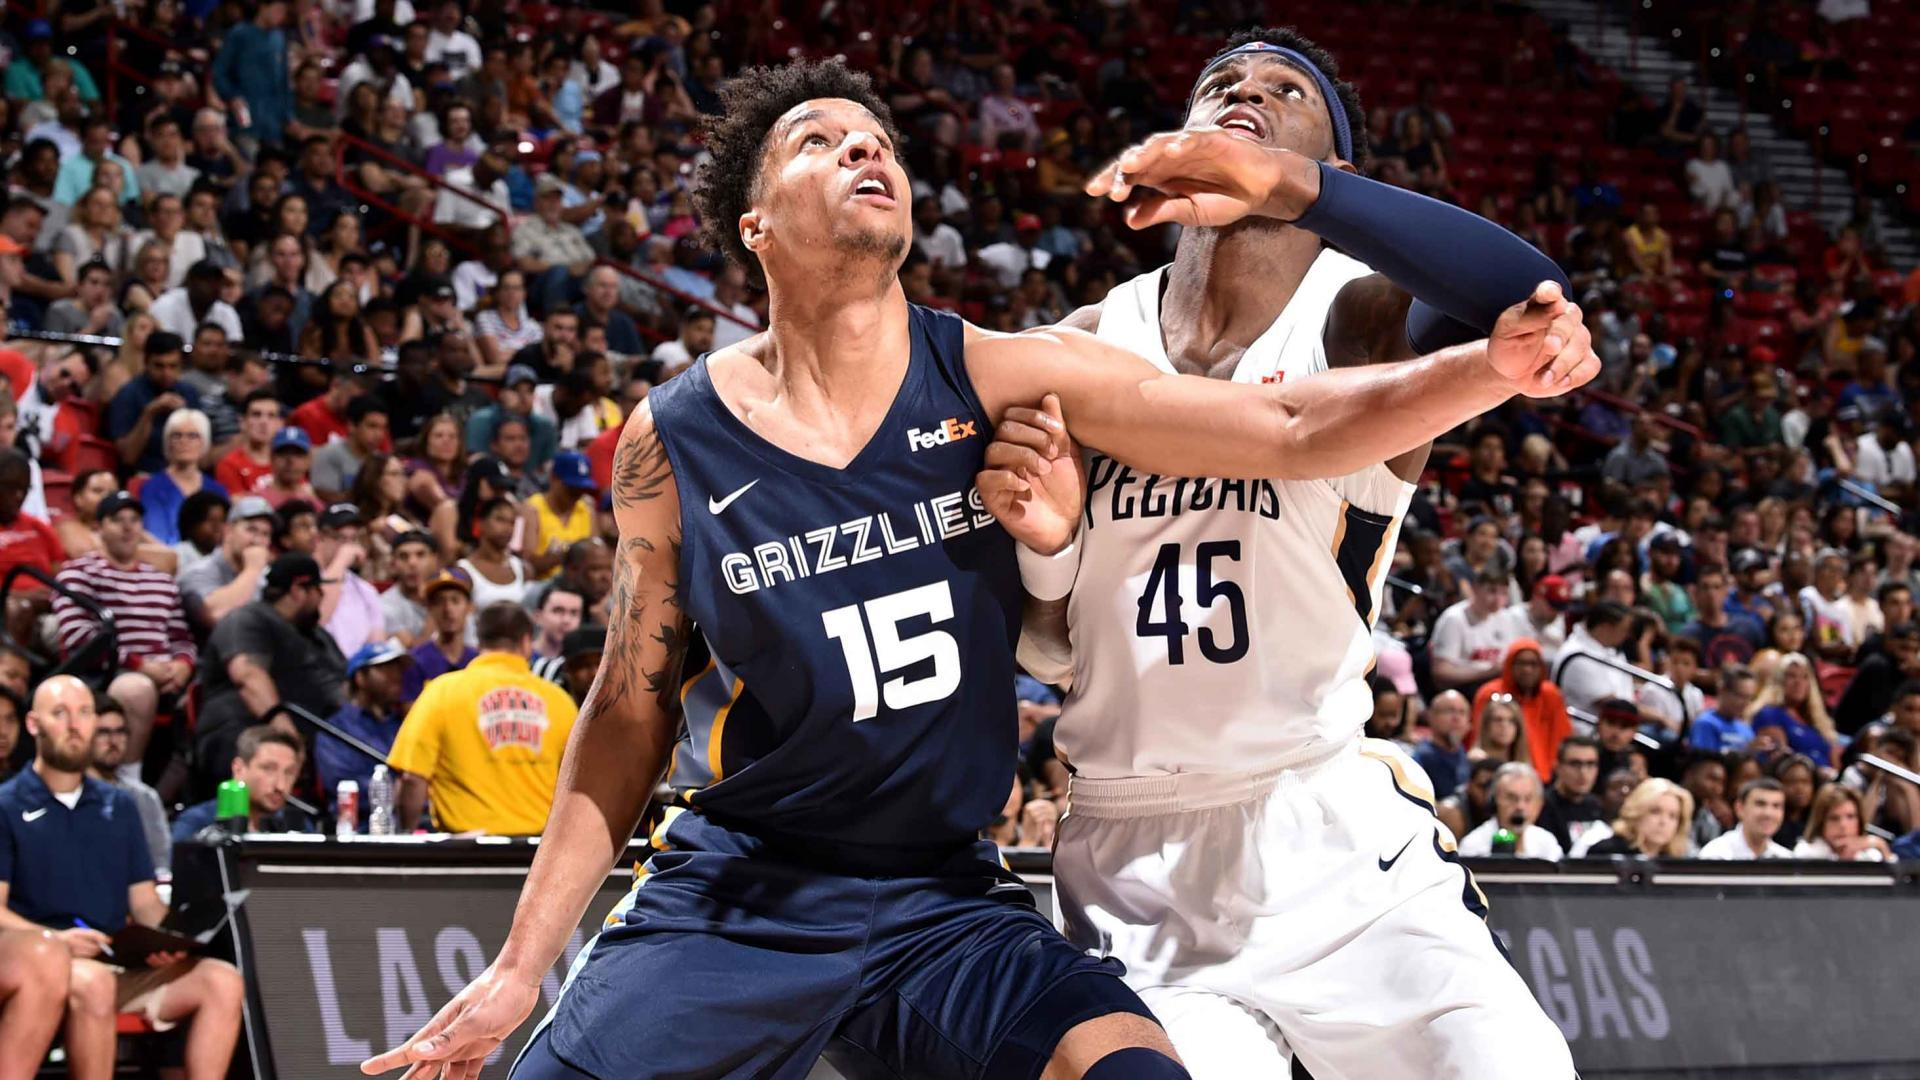 15.07.19. Обзор. GAME RECAP: Grizzlies 88, Pelicans 86